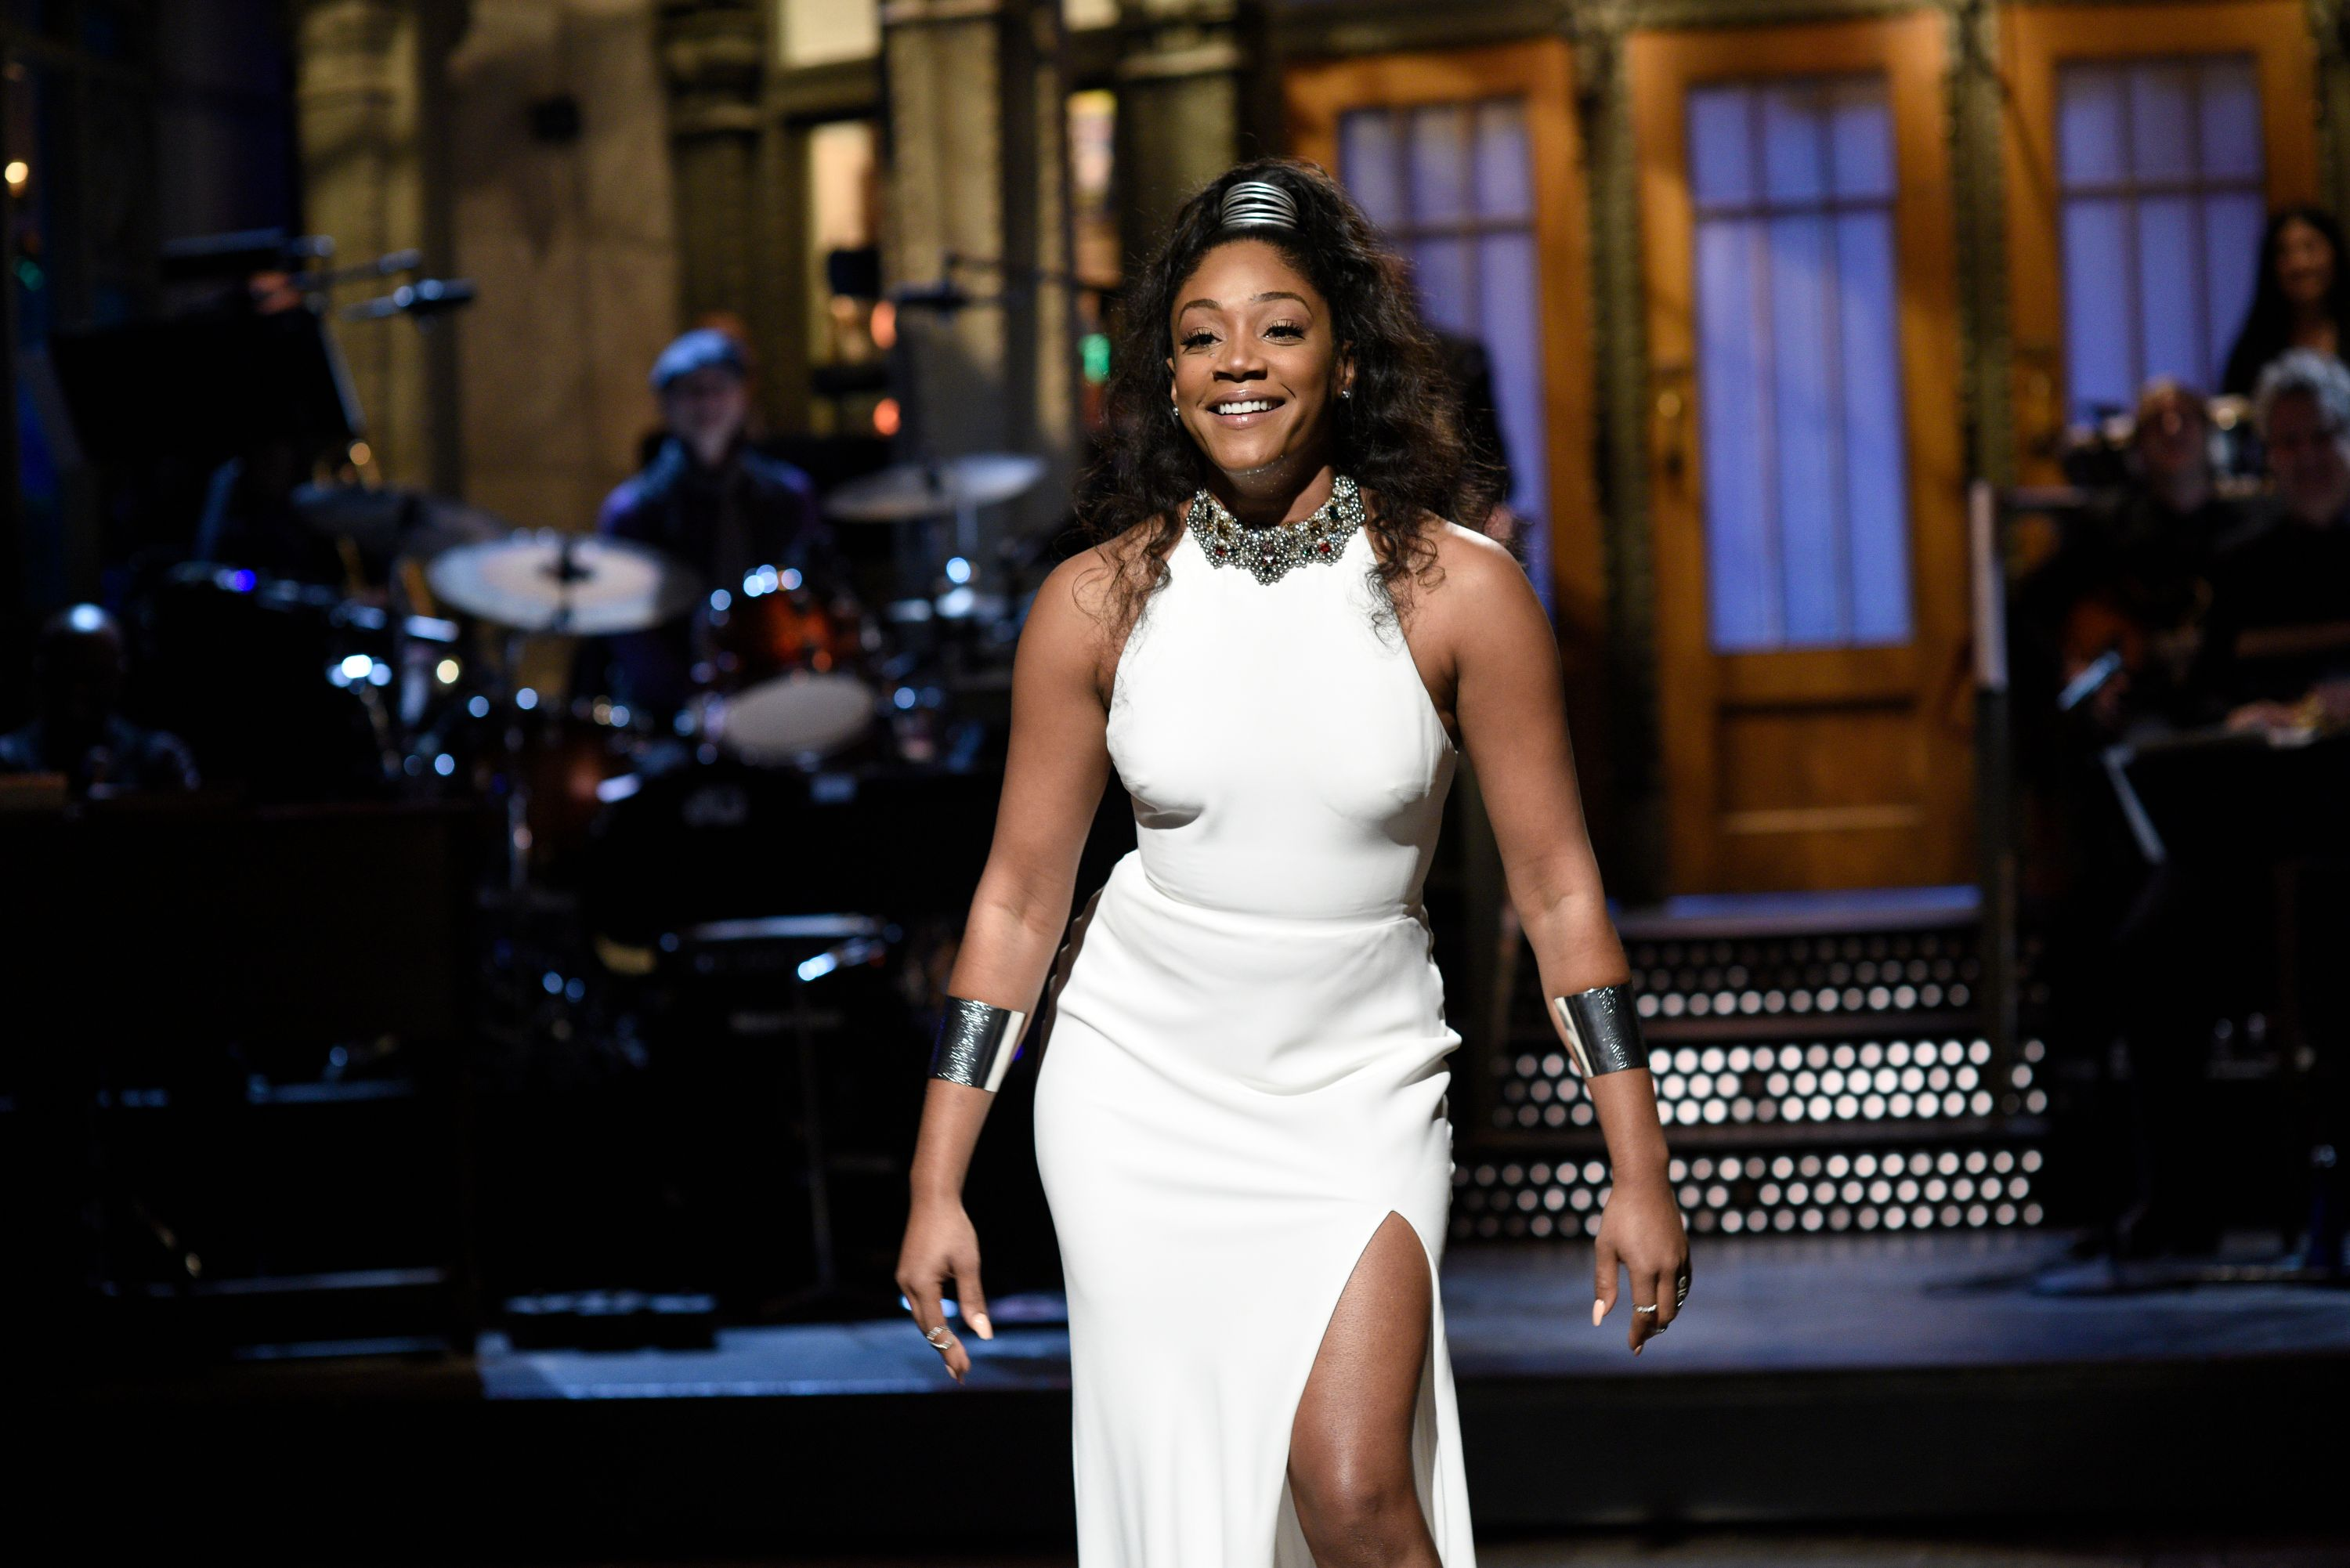 Tiffany Haddish during the Opening Monologue in Studio 8H on November 11, 2017. | Photo: Getty Images